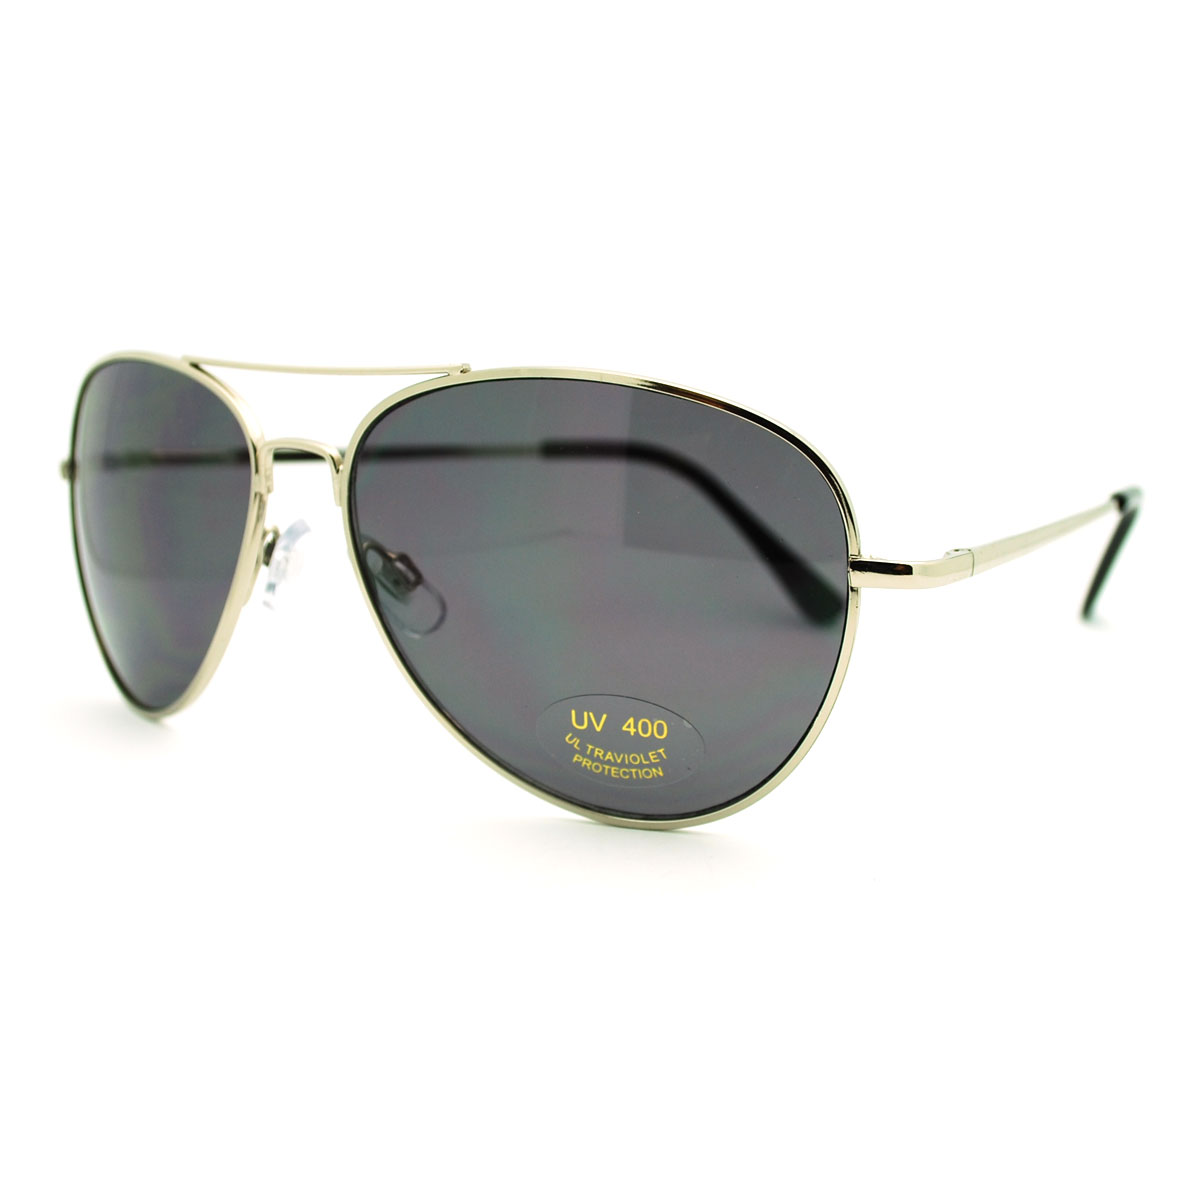 Original Aviator Sunglasses  classic tear drop shape metal frame aviator sunglasses ebay